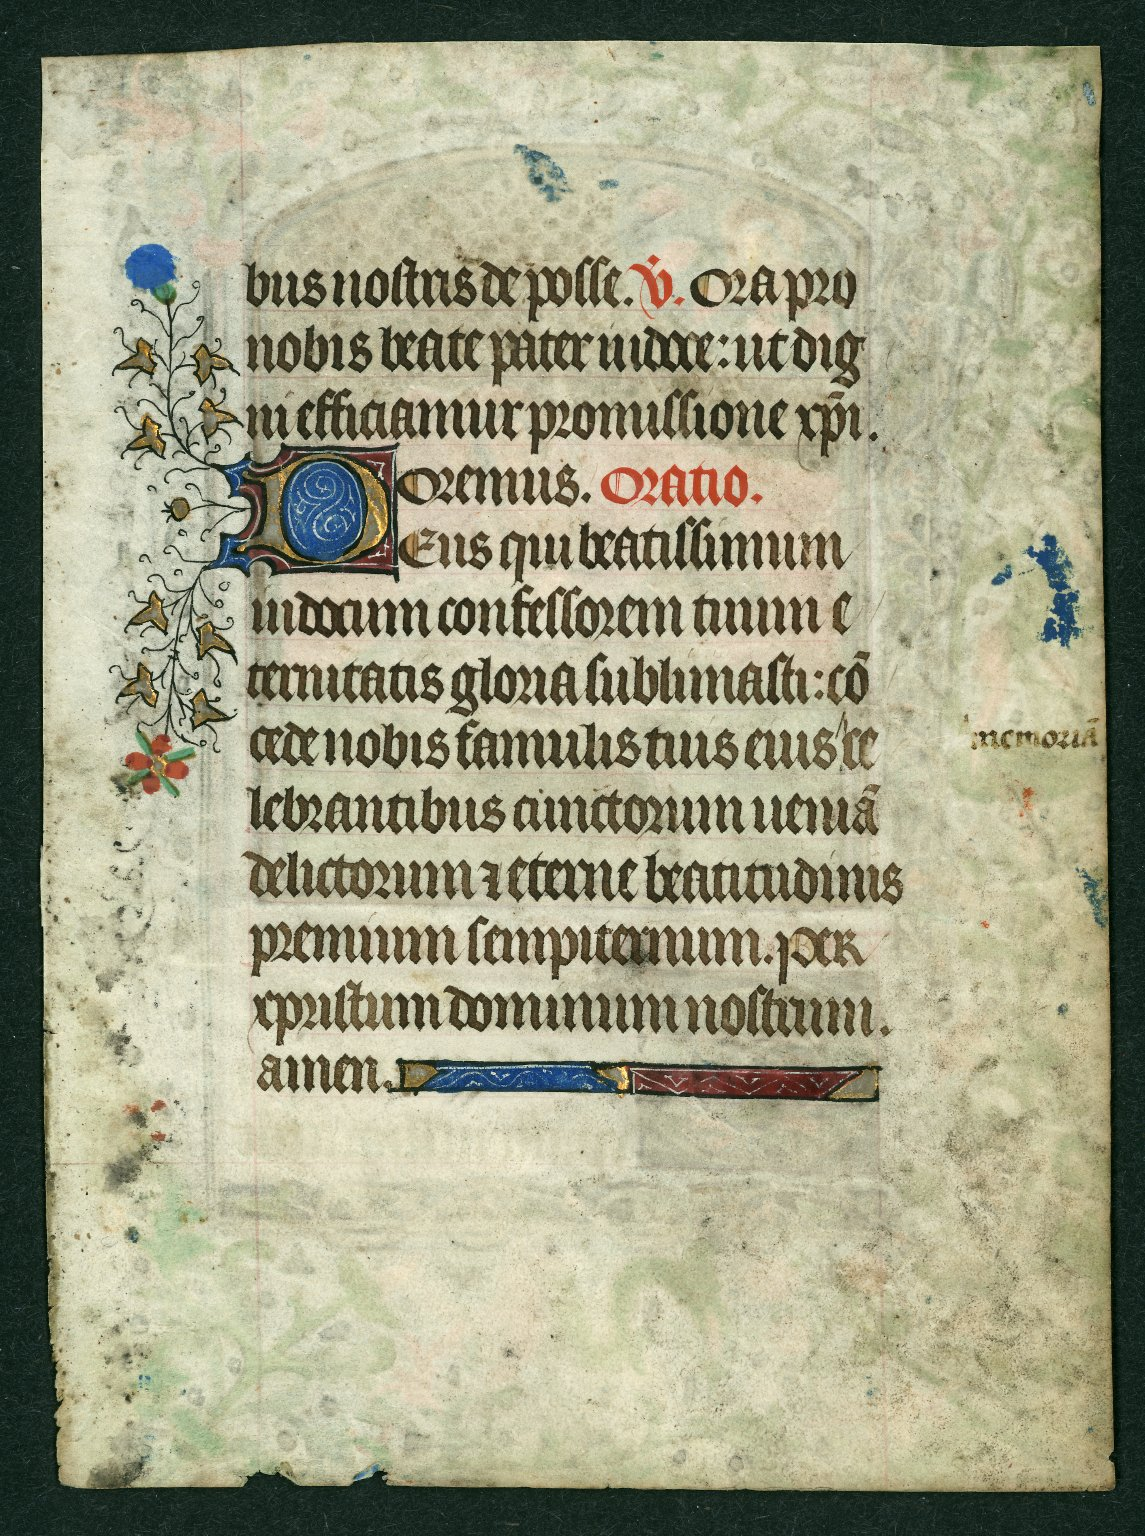 Book of Hours leaves